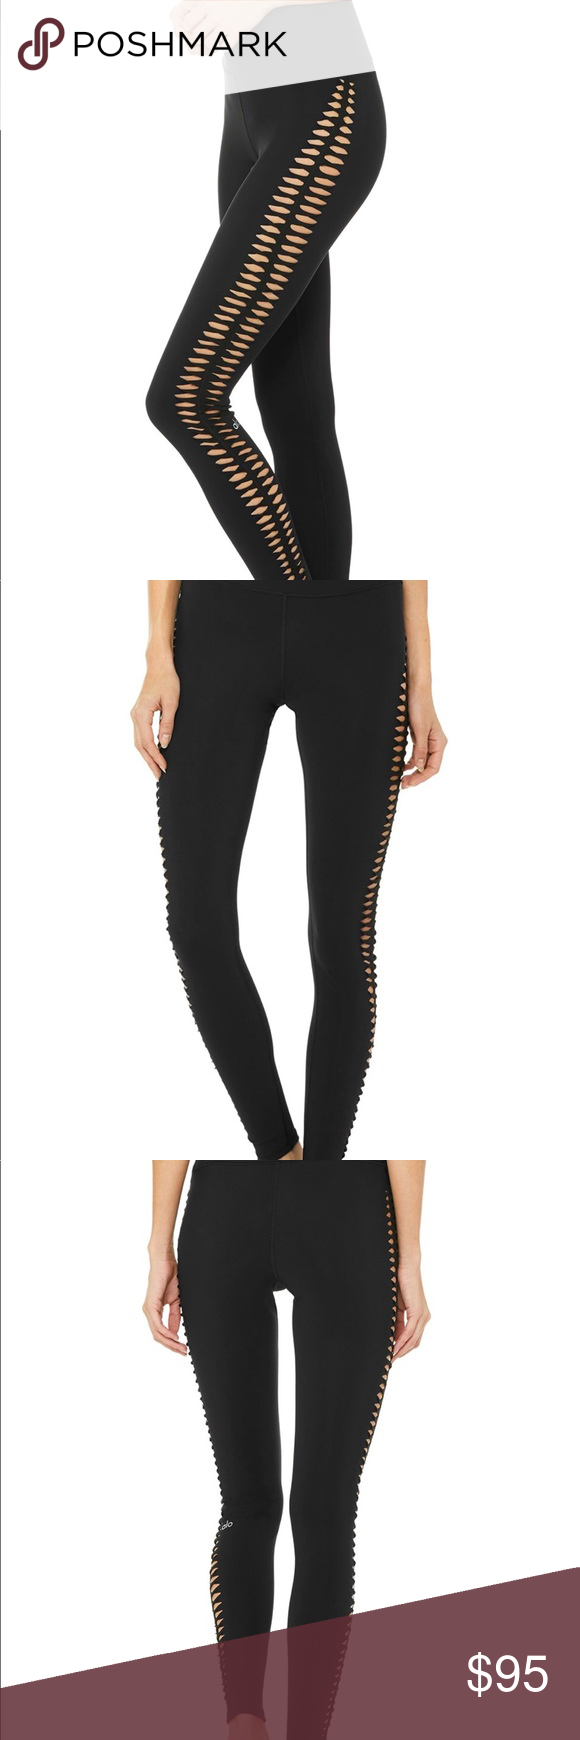 c1df71e749 ALO HIGH-WAIST REFORM LEGGING - Black [XS] These gorgeous leggings have been